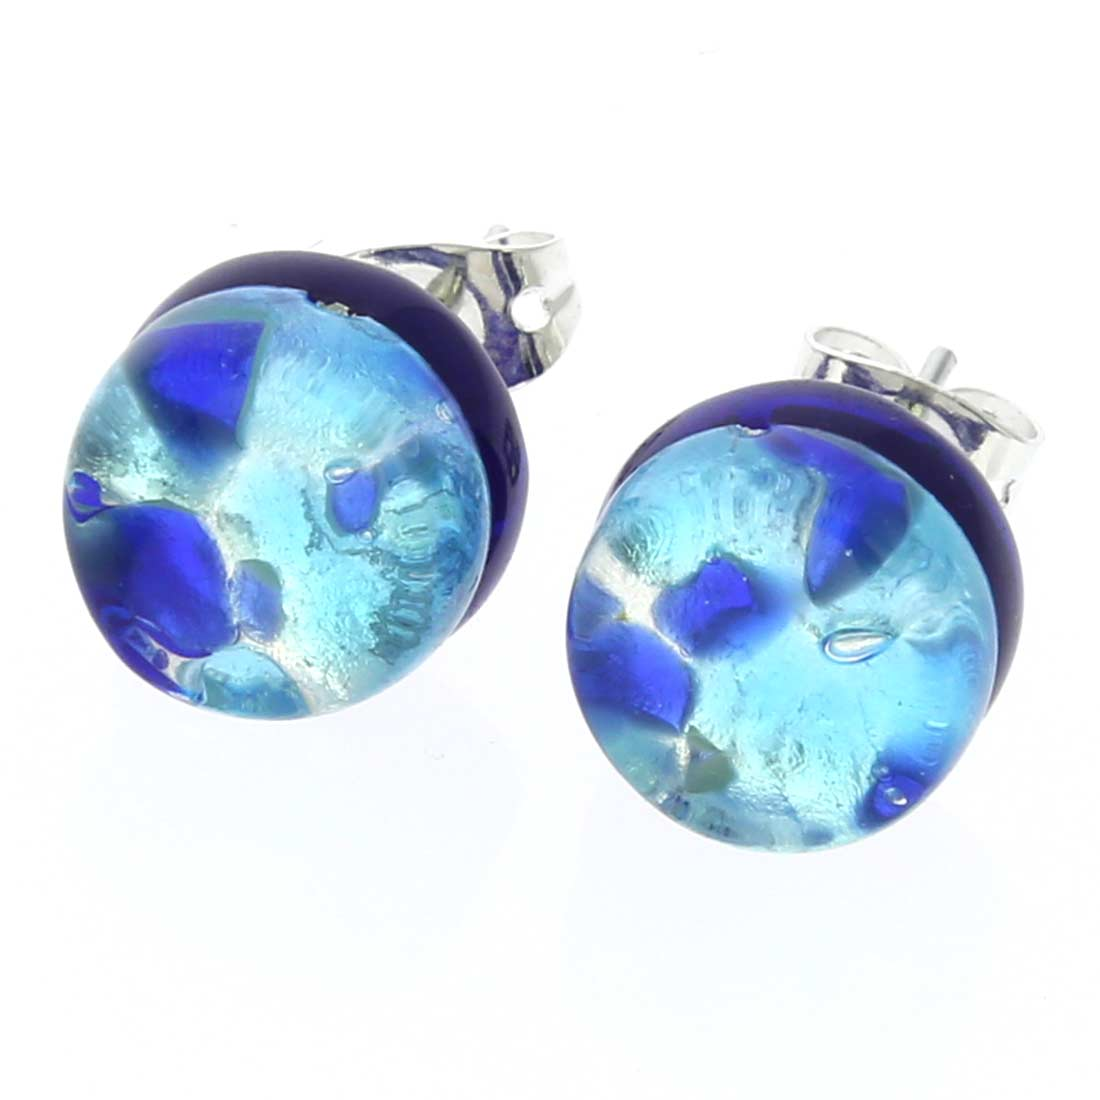 Venetian Reflections Round Stud Earrings - Aqua Blue